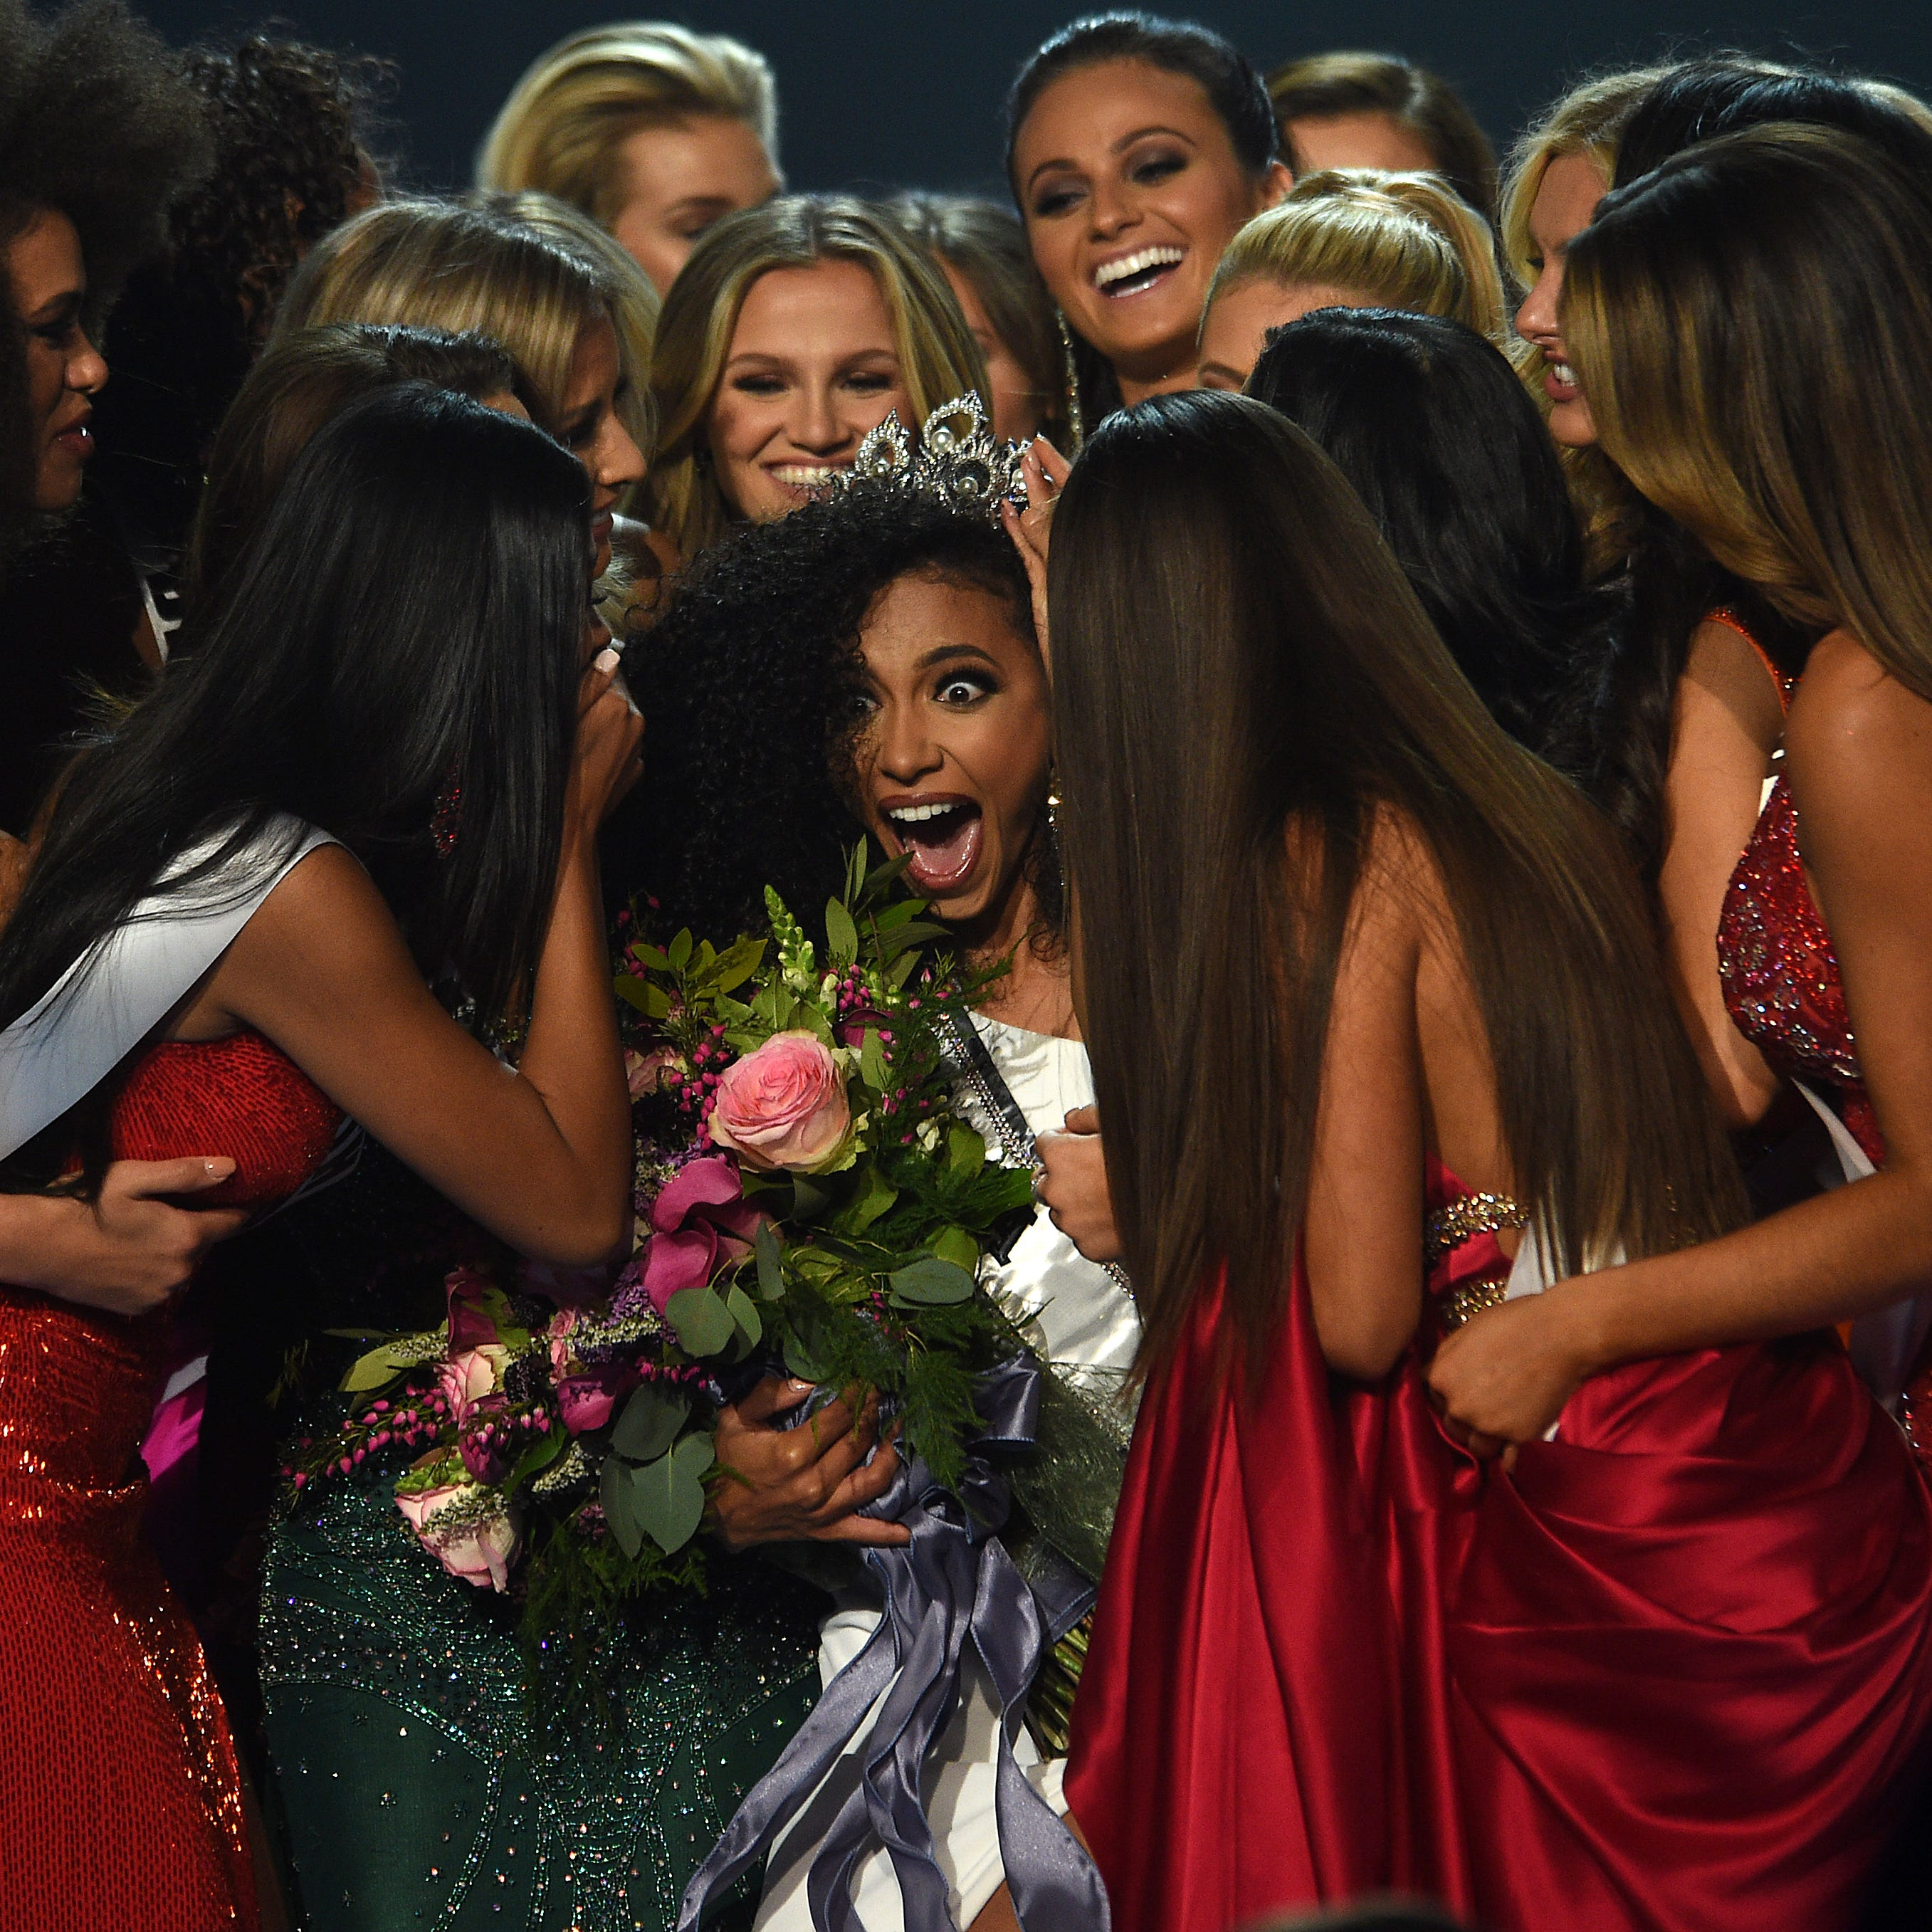 I watched a beauty pageant live for the first time: 6 things I learned at Miss USA 2019